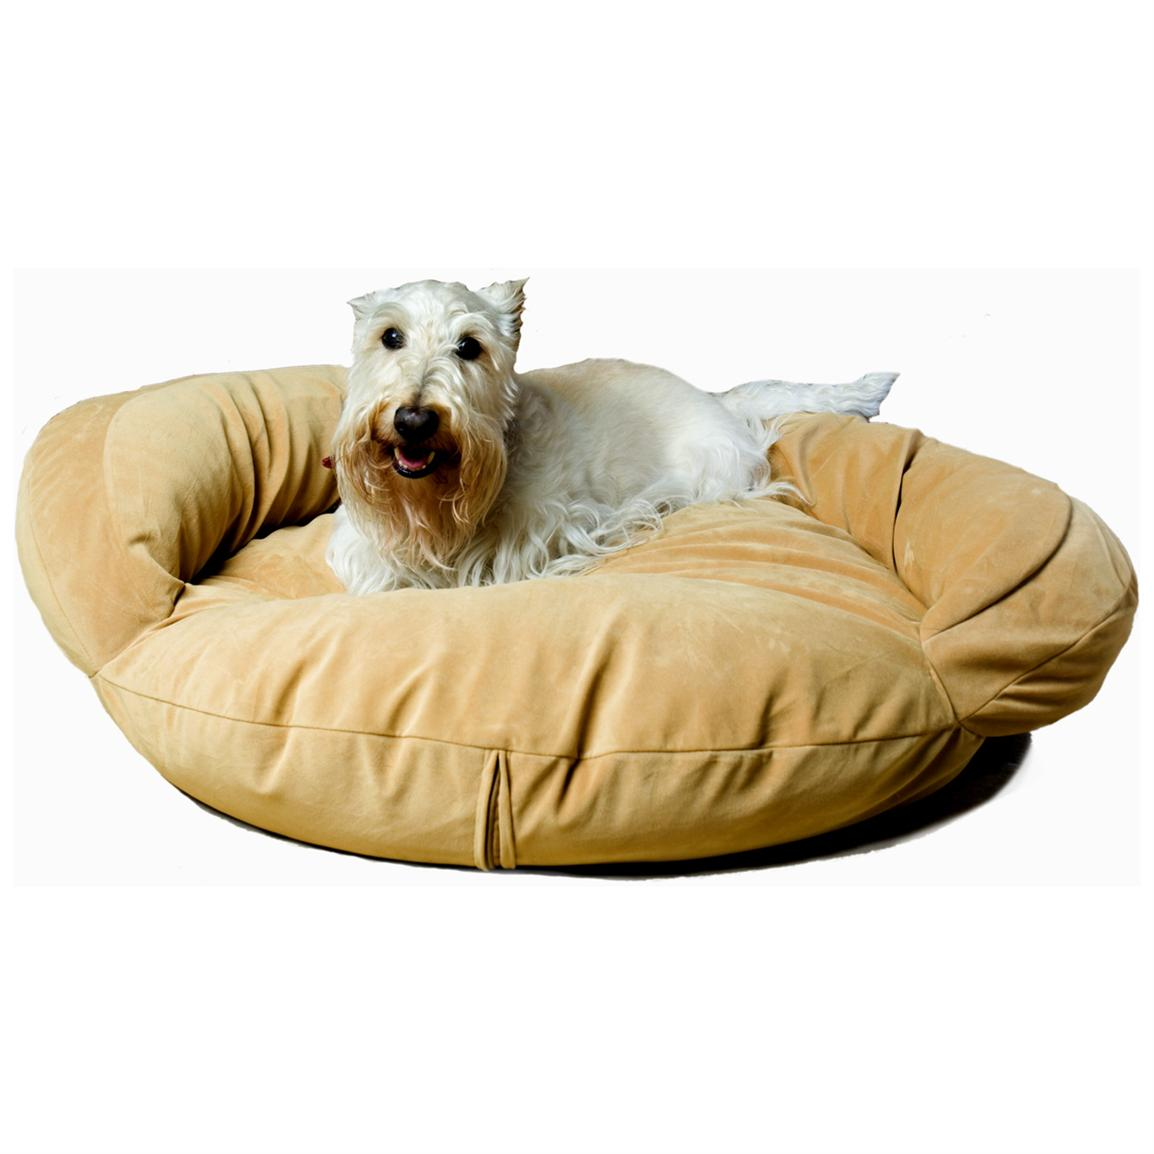 Carolina Pet Co. Microfiber Bolster Bed, Caramel